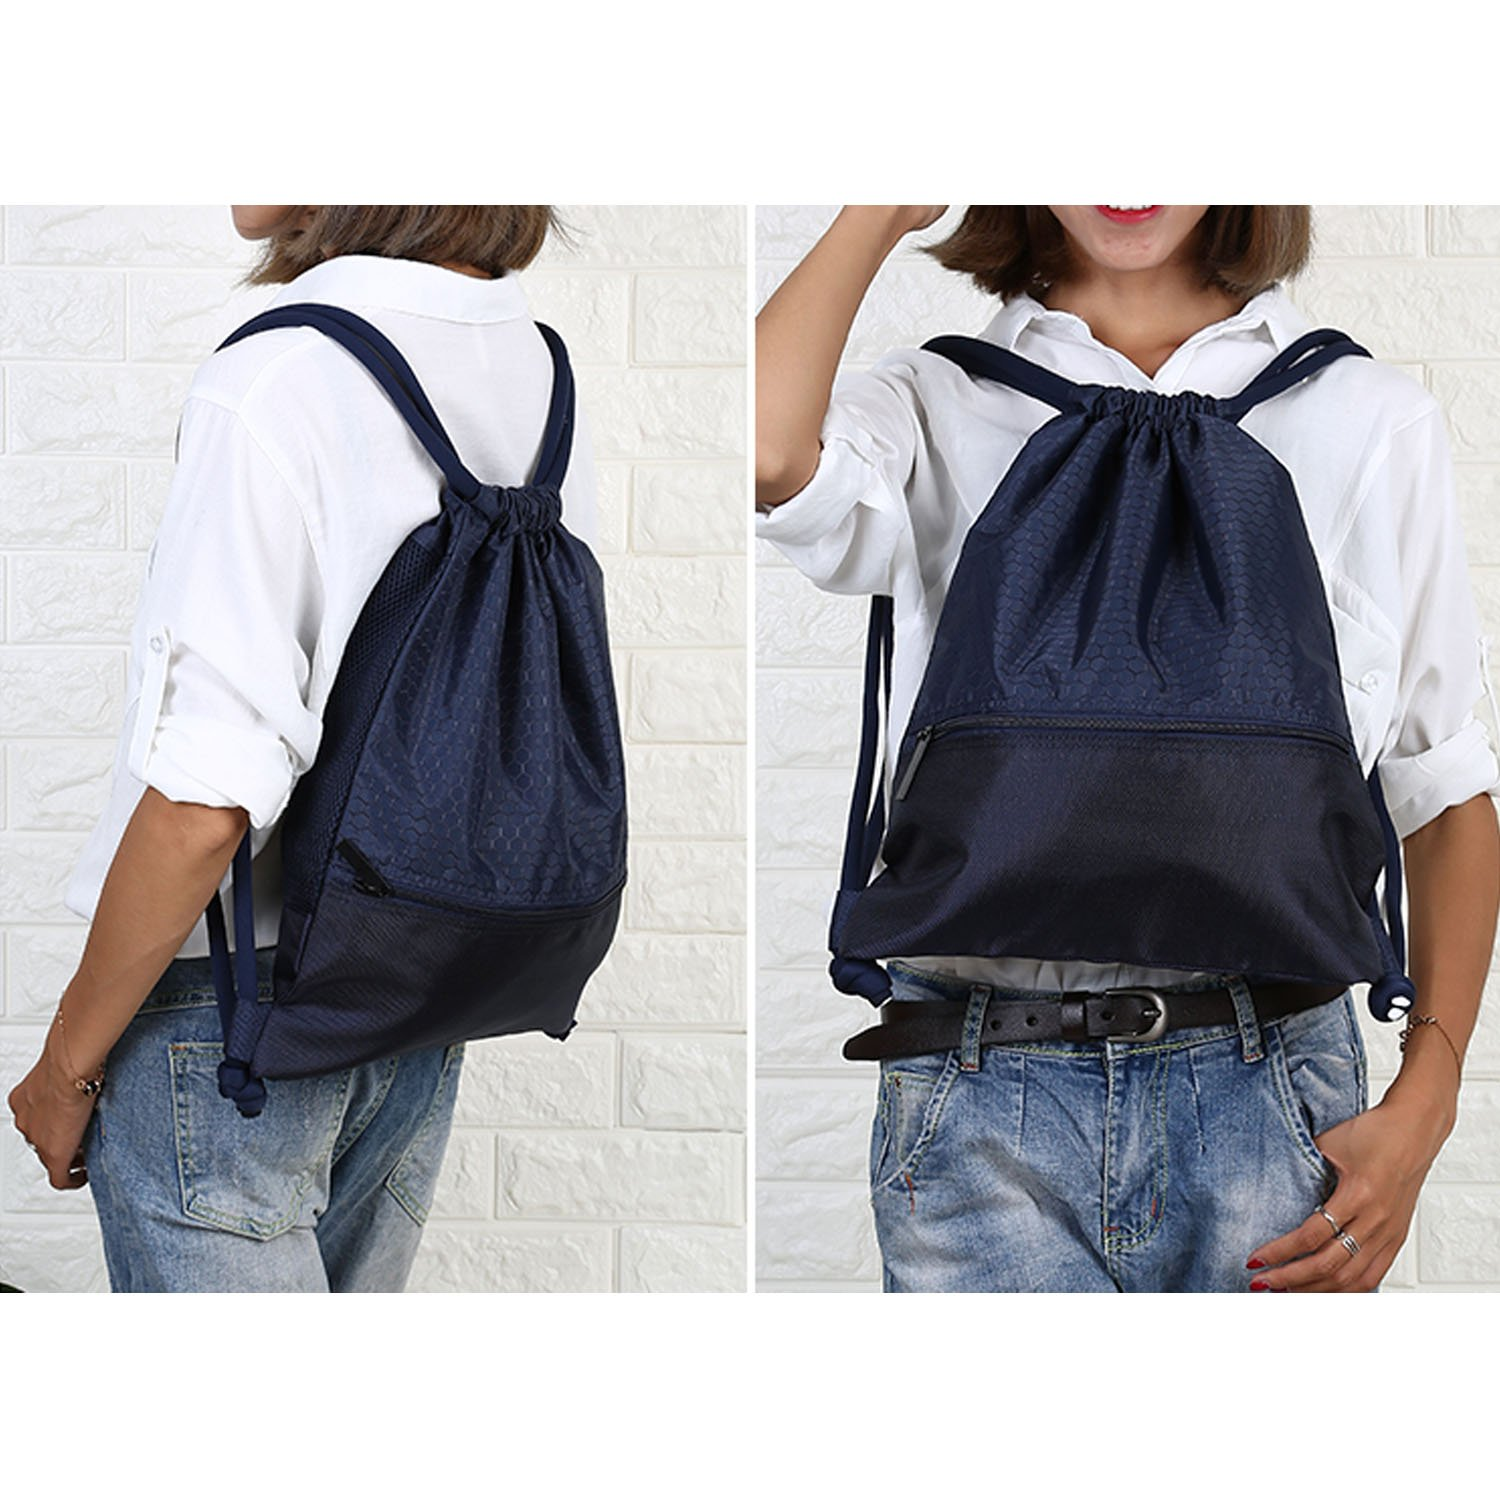 Double Sturdy Drawstring Bag With Pockets Waterproof | For Sports & Workout Gear | Large Capacity String Backpack | 8 Colors (Large, Navy) by Haoguagua (Image #3)